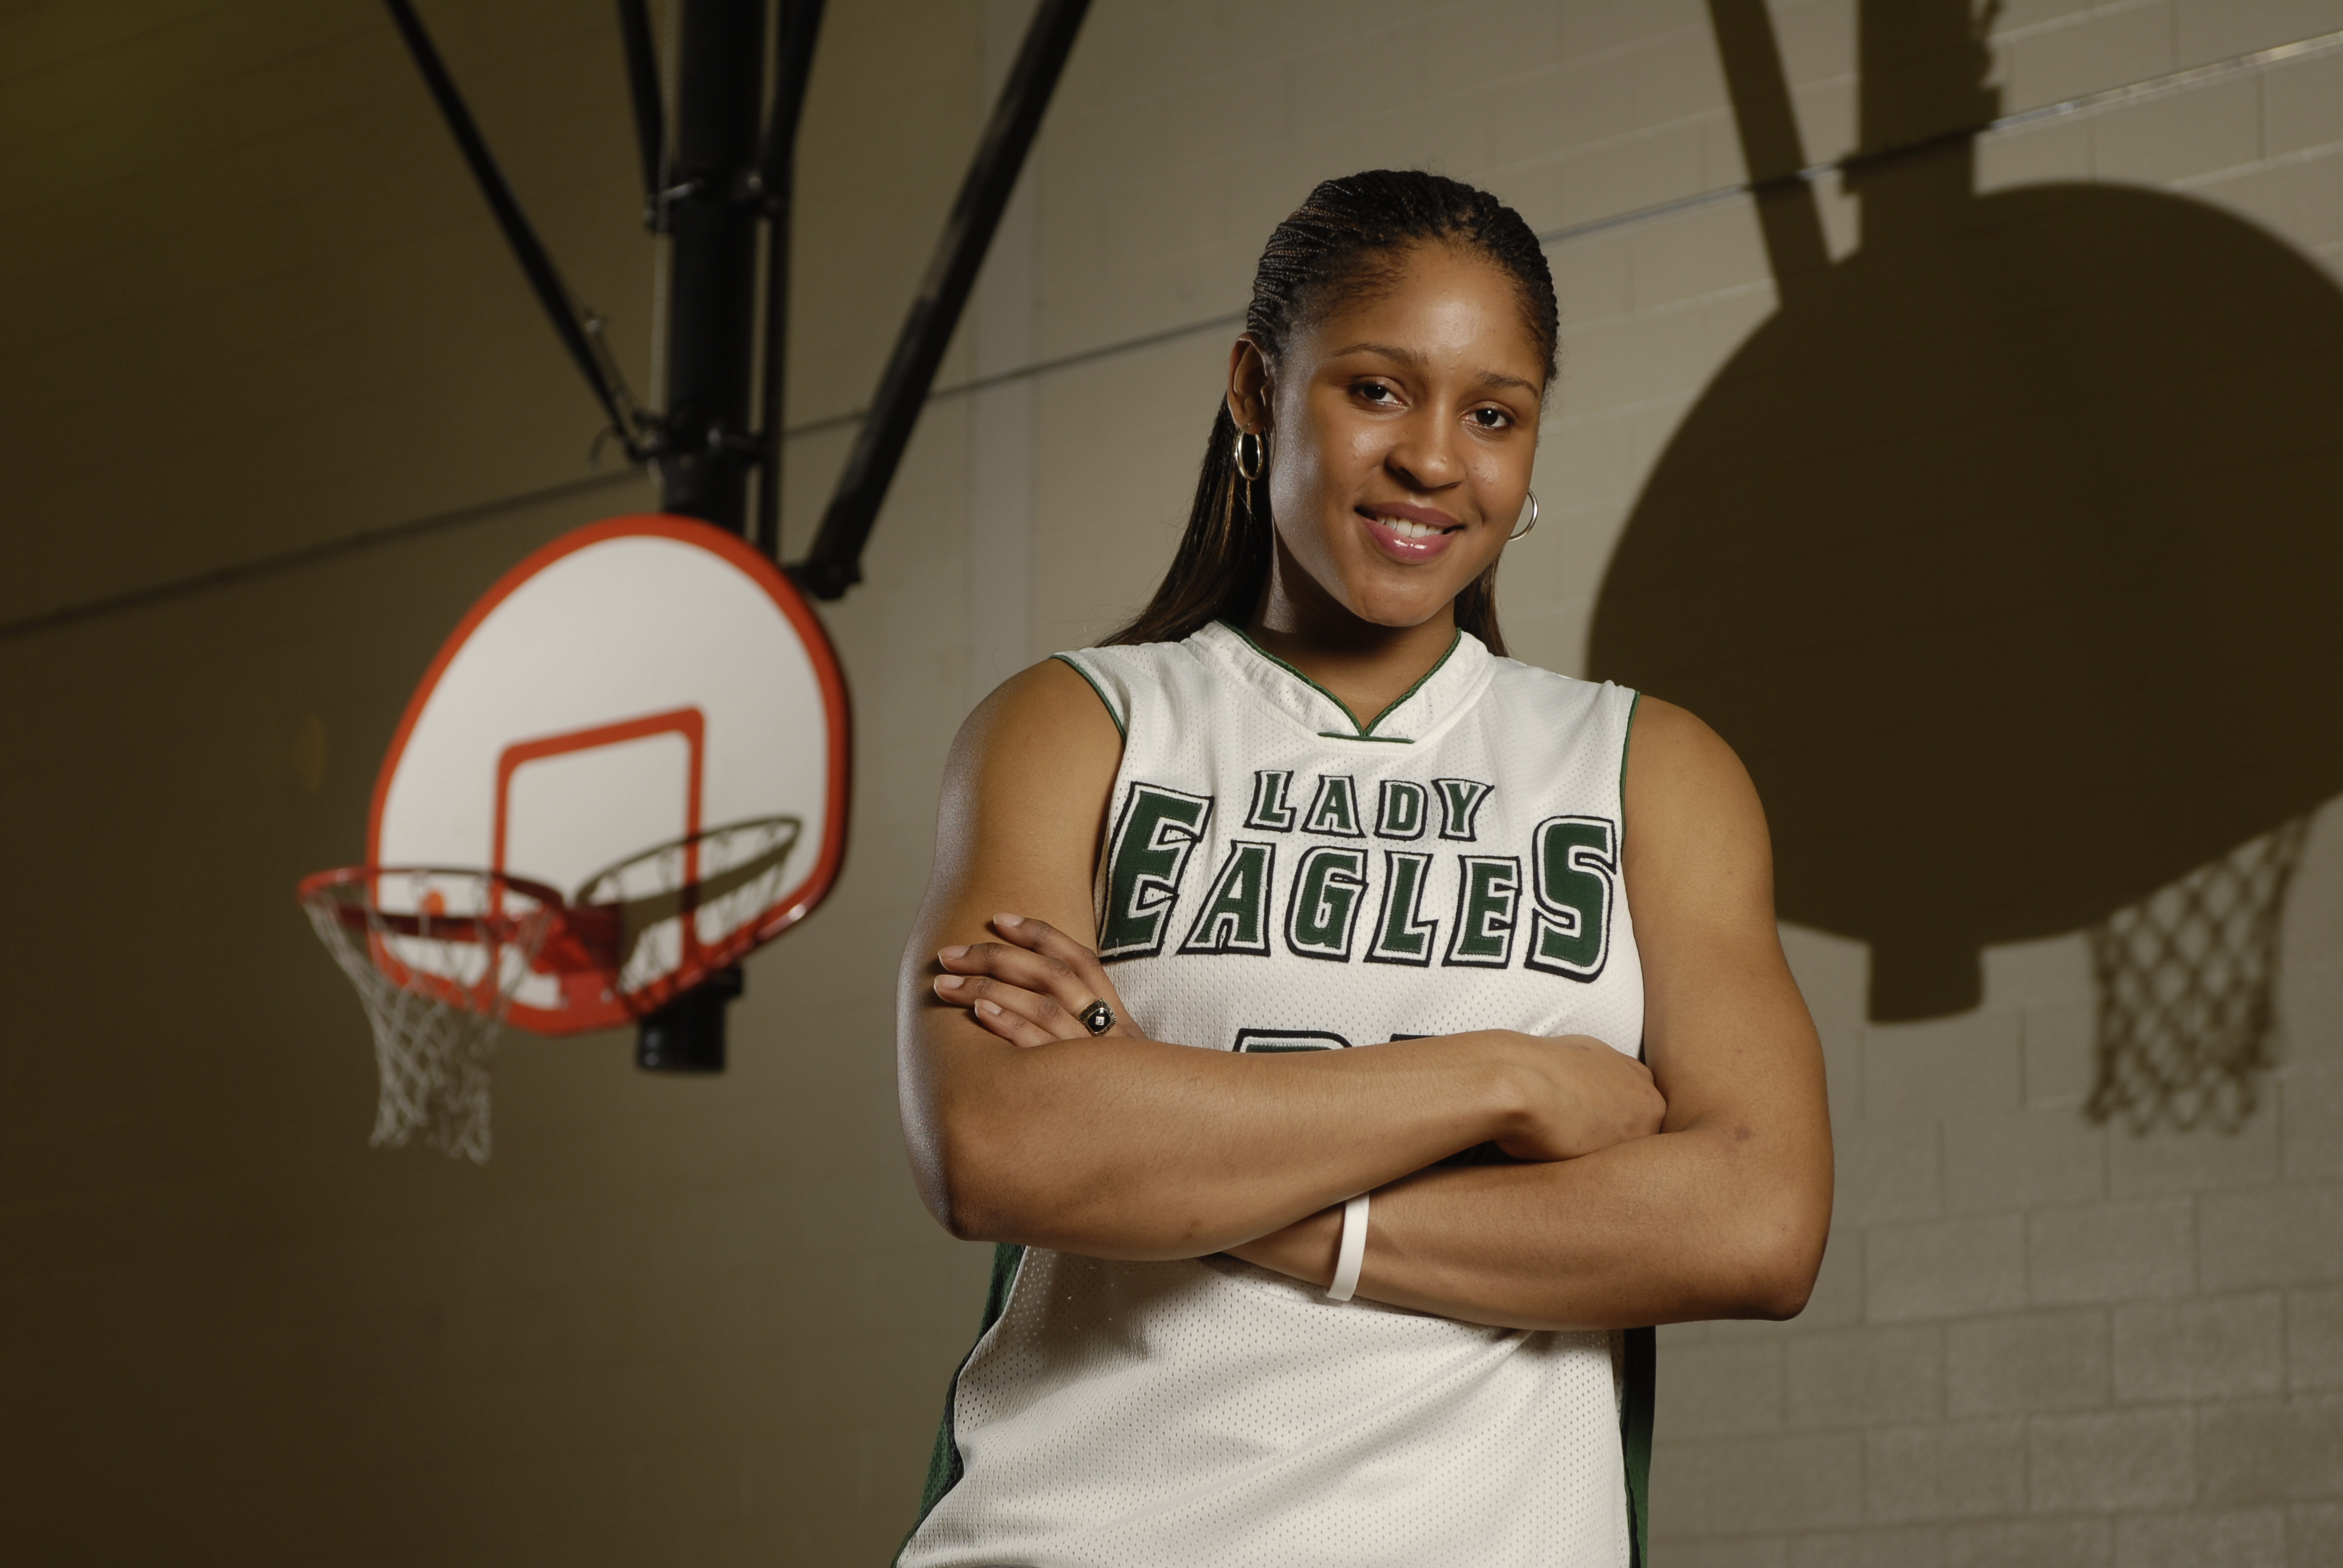 Maya Moore of Collins Hill High in Suwanee, Ga., was named to the American Family Insurance ALL-USA Team in 2007 (Photo: Michael A. Schwarz, USA TODAY Sports)